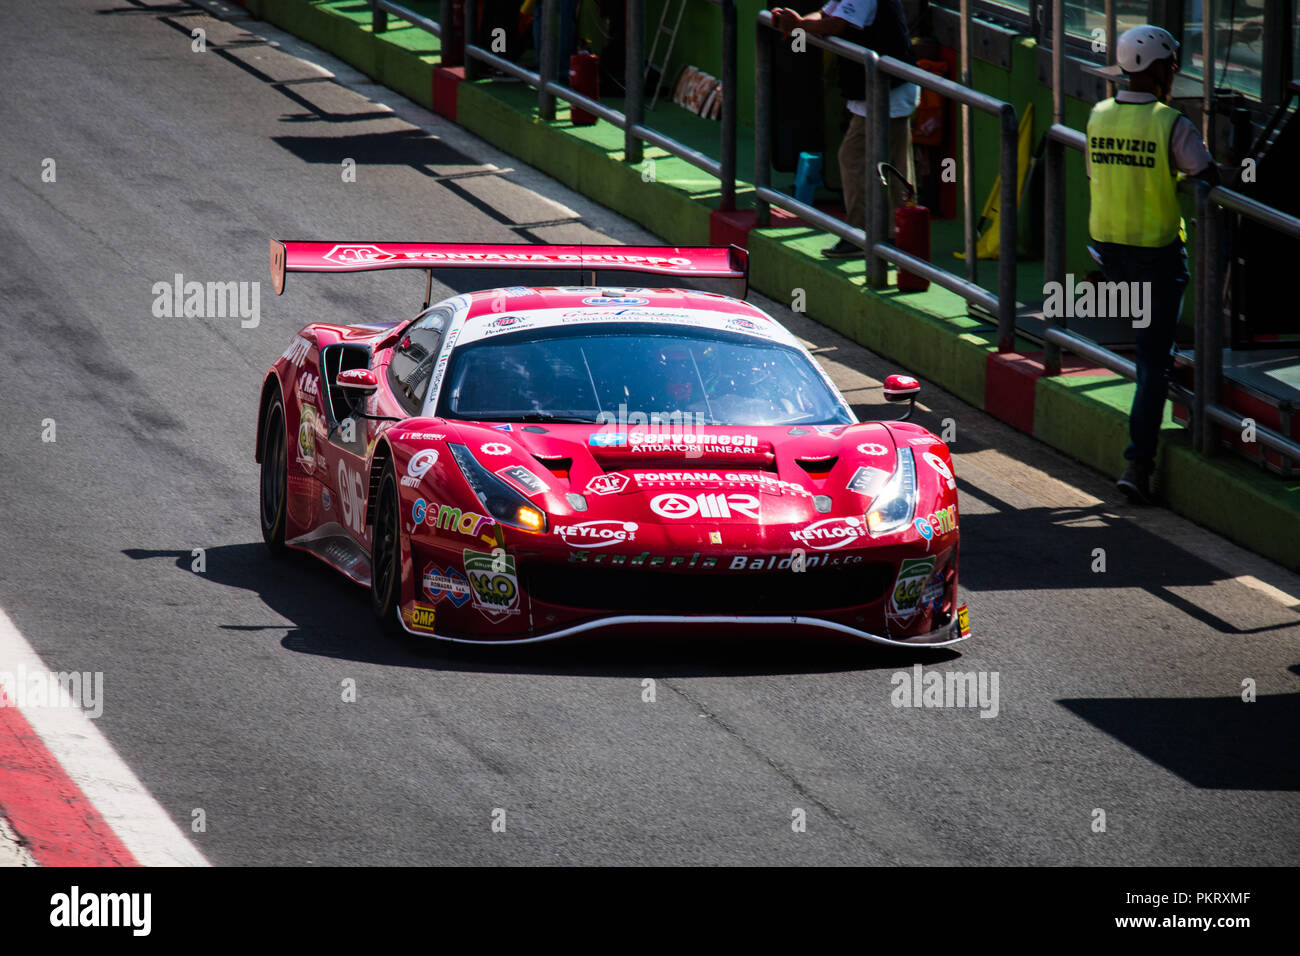 High angle view full length of Ferrari touring car in racing circuit pit lane - Stock Image